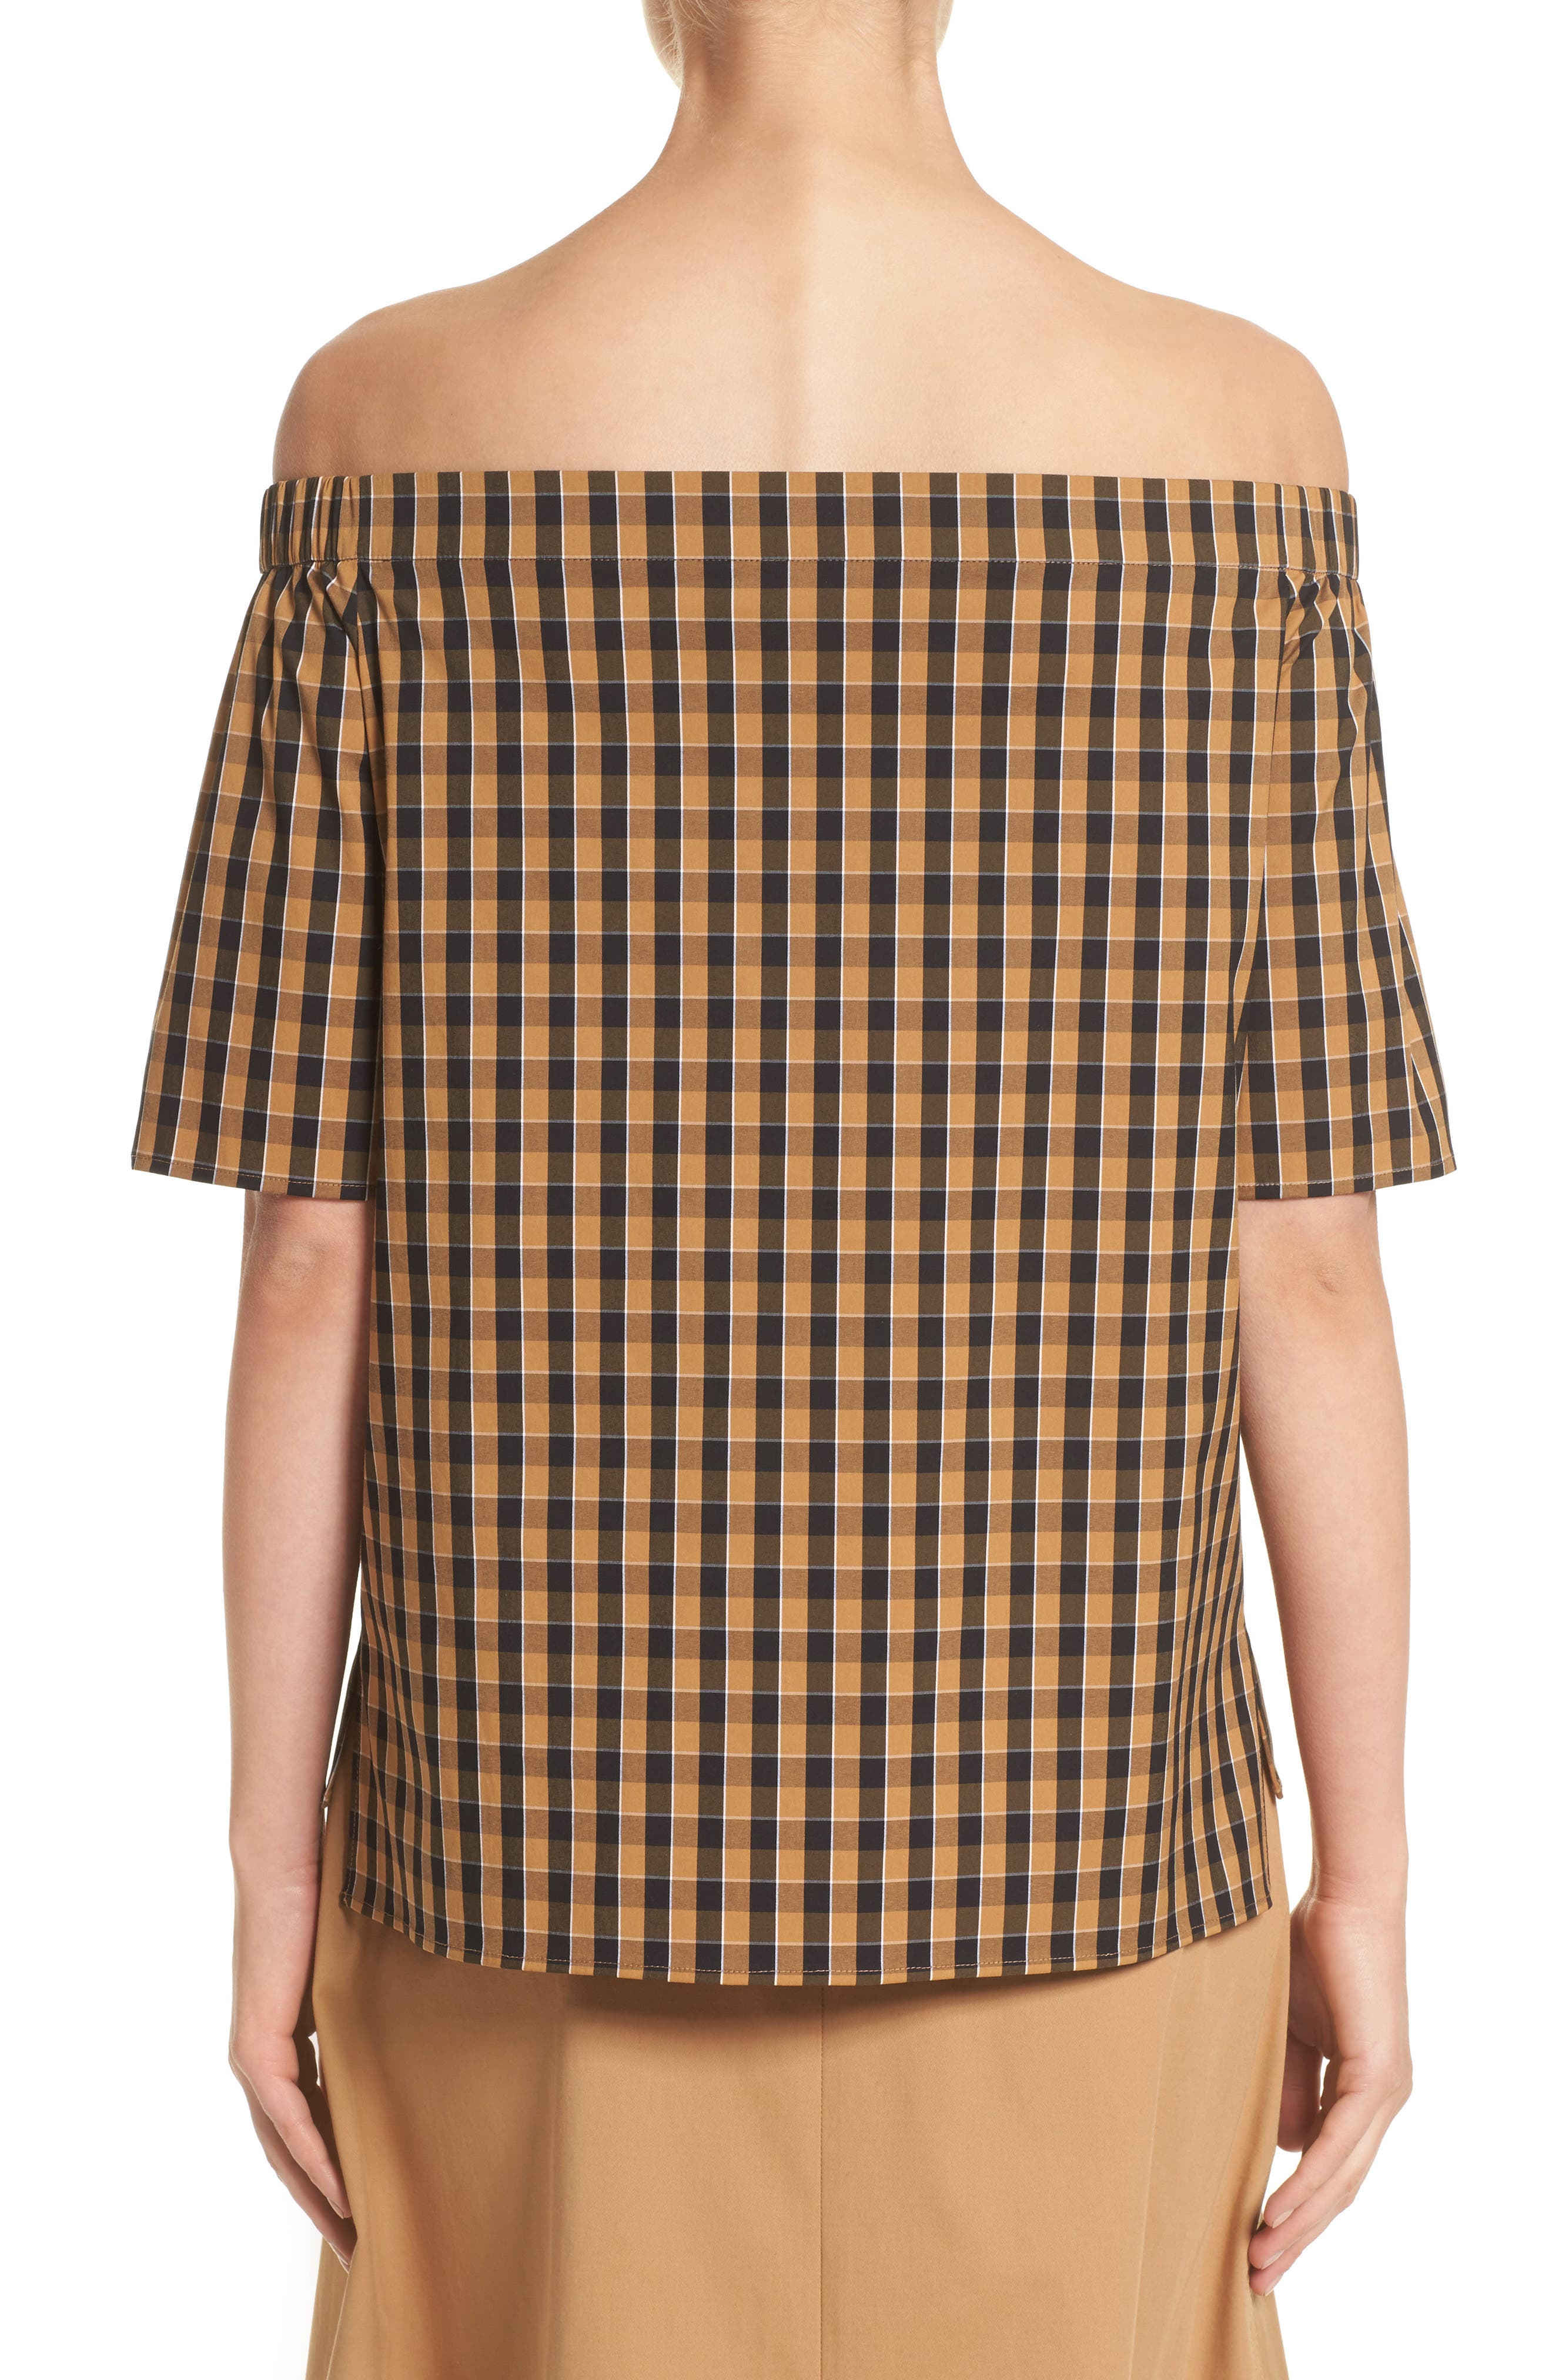 Alternate Image 2  - Lafayette 148 New York Livvy Neo Classic Check Blouse